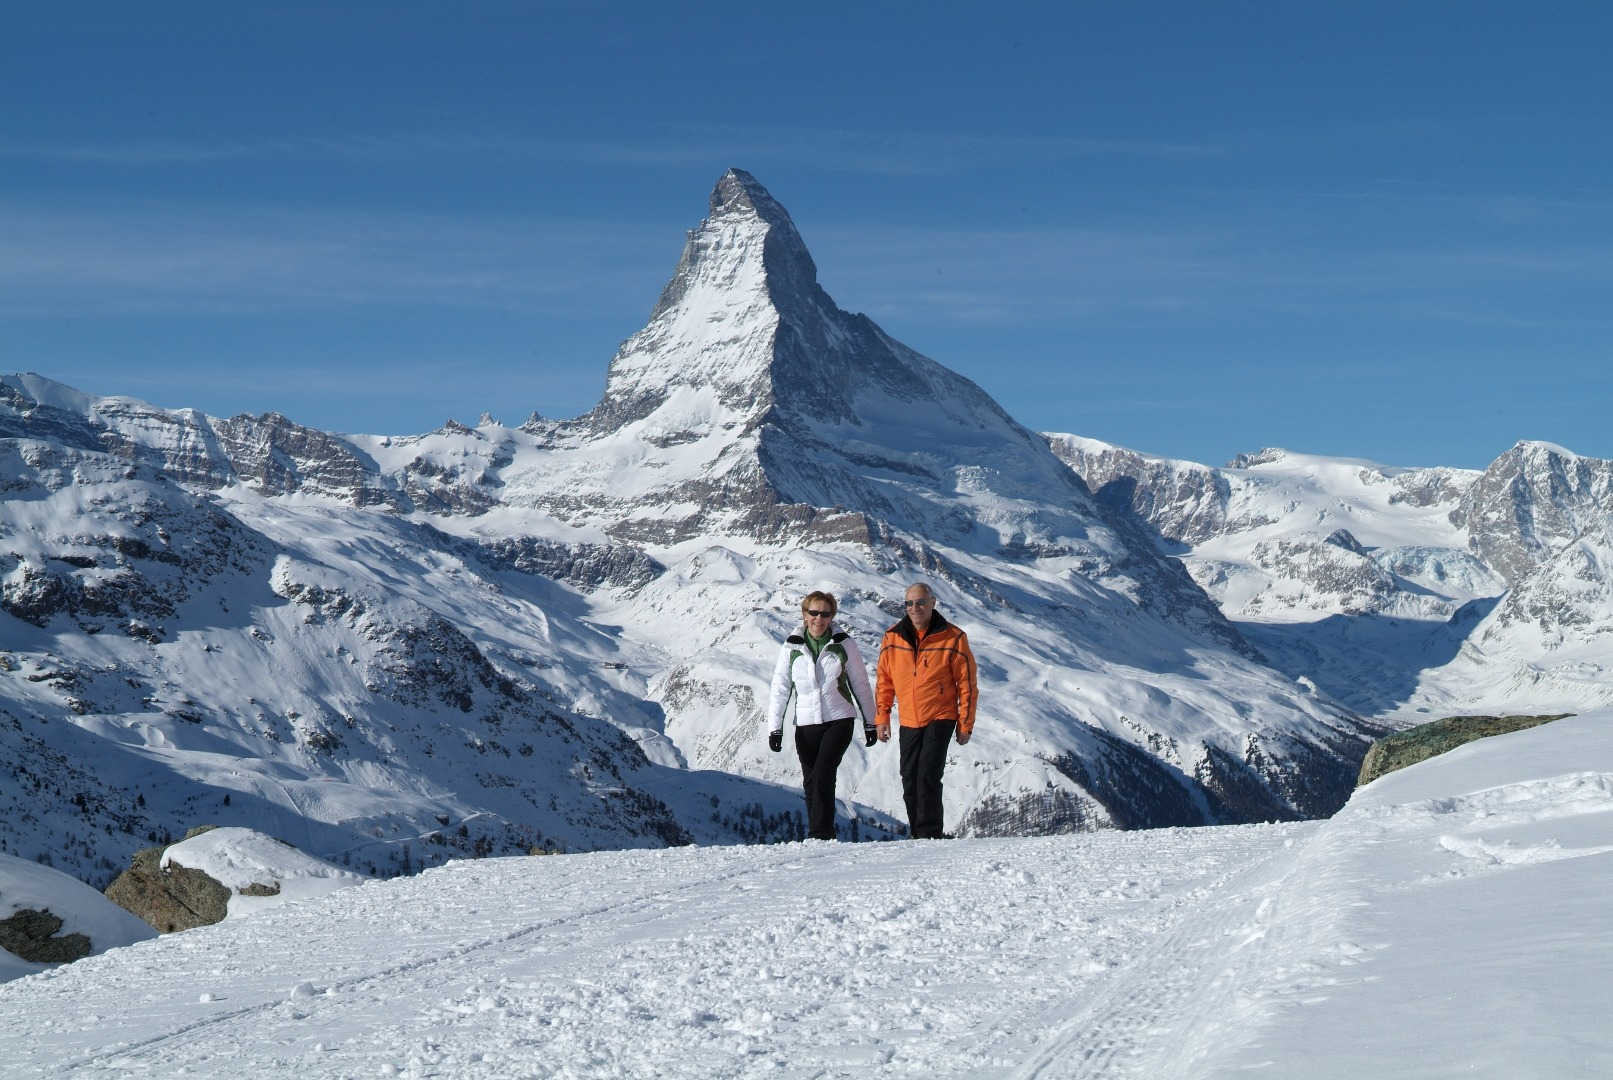 Winter hike Zermatt